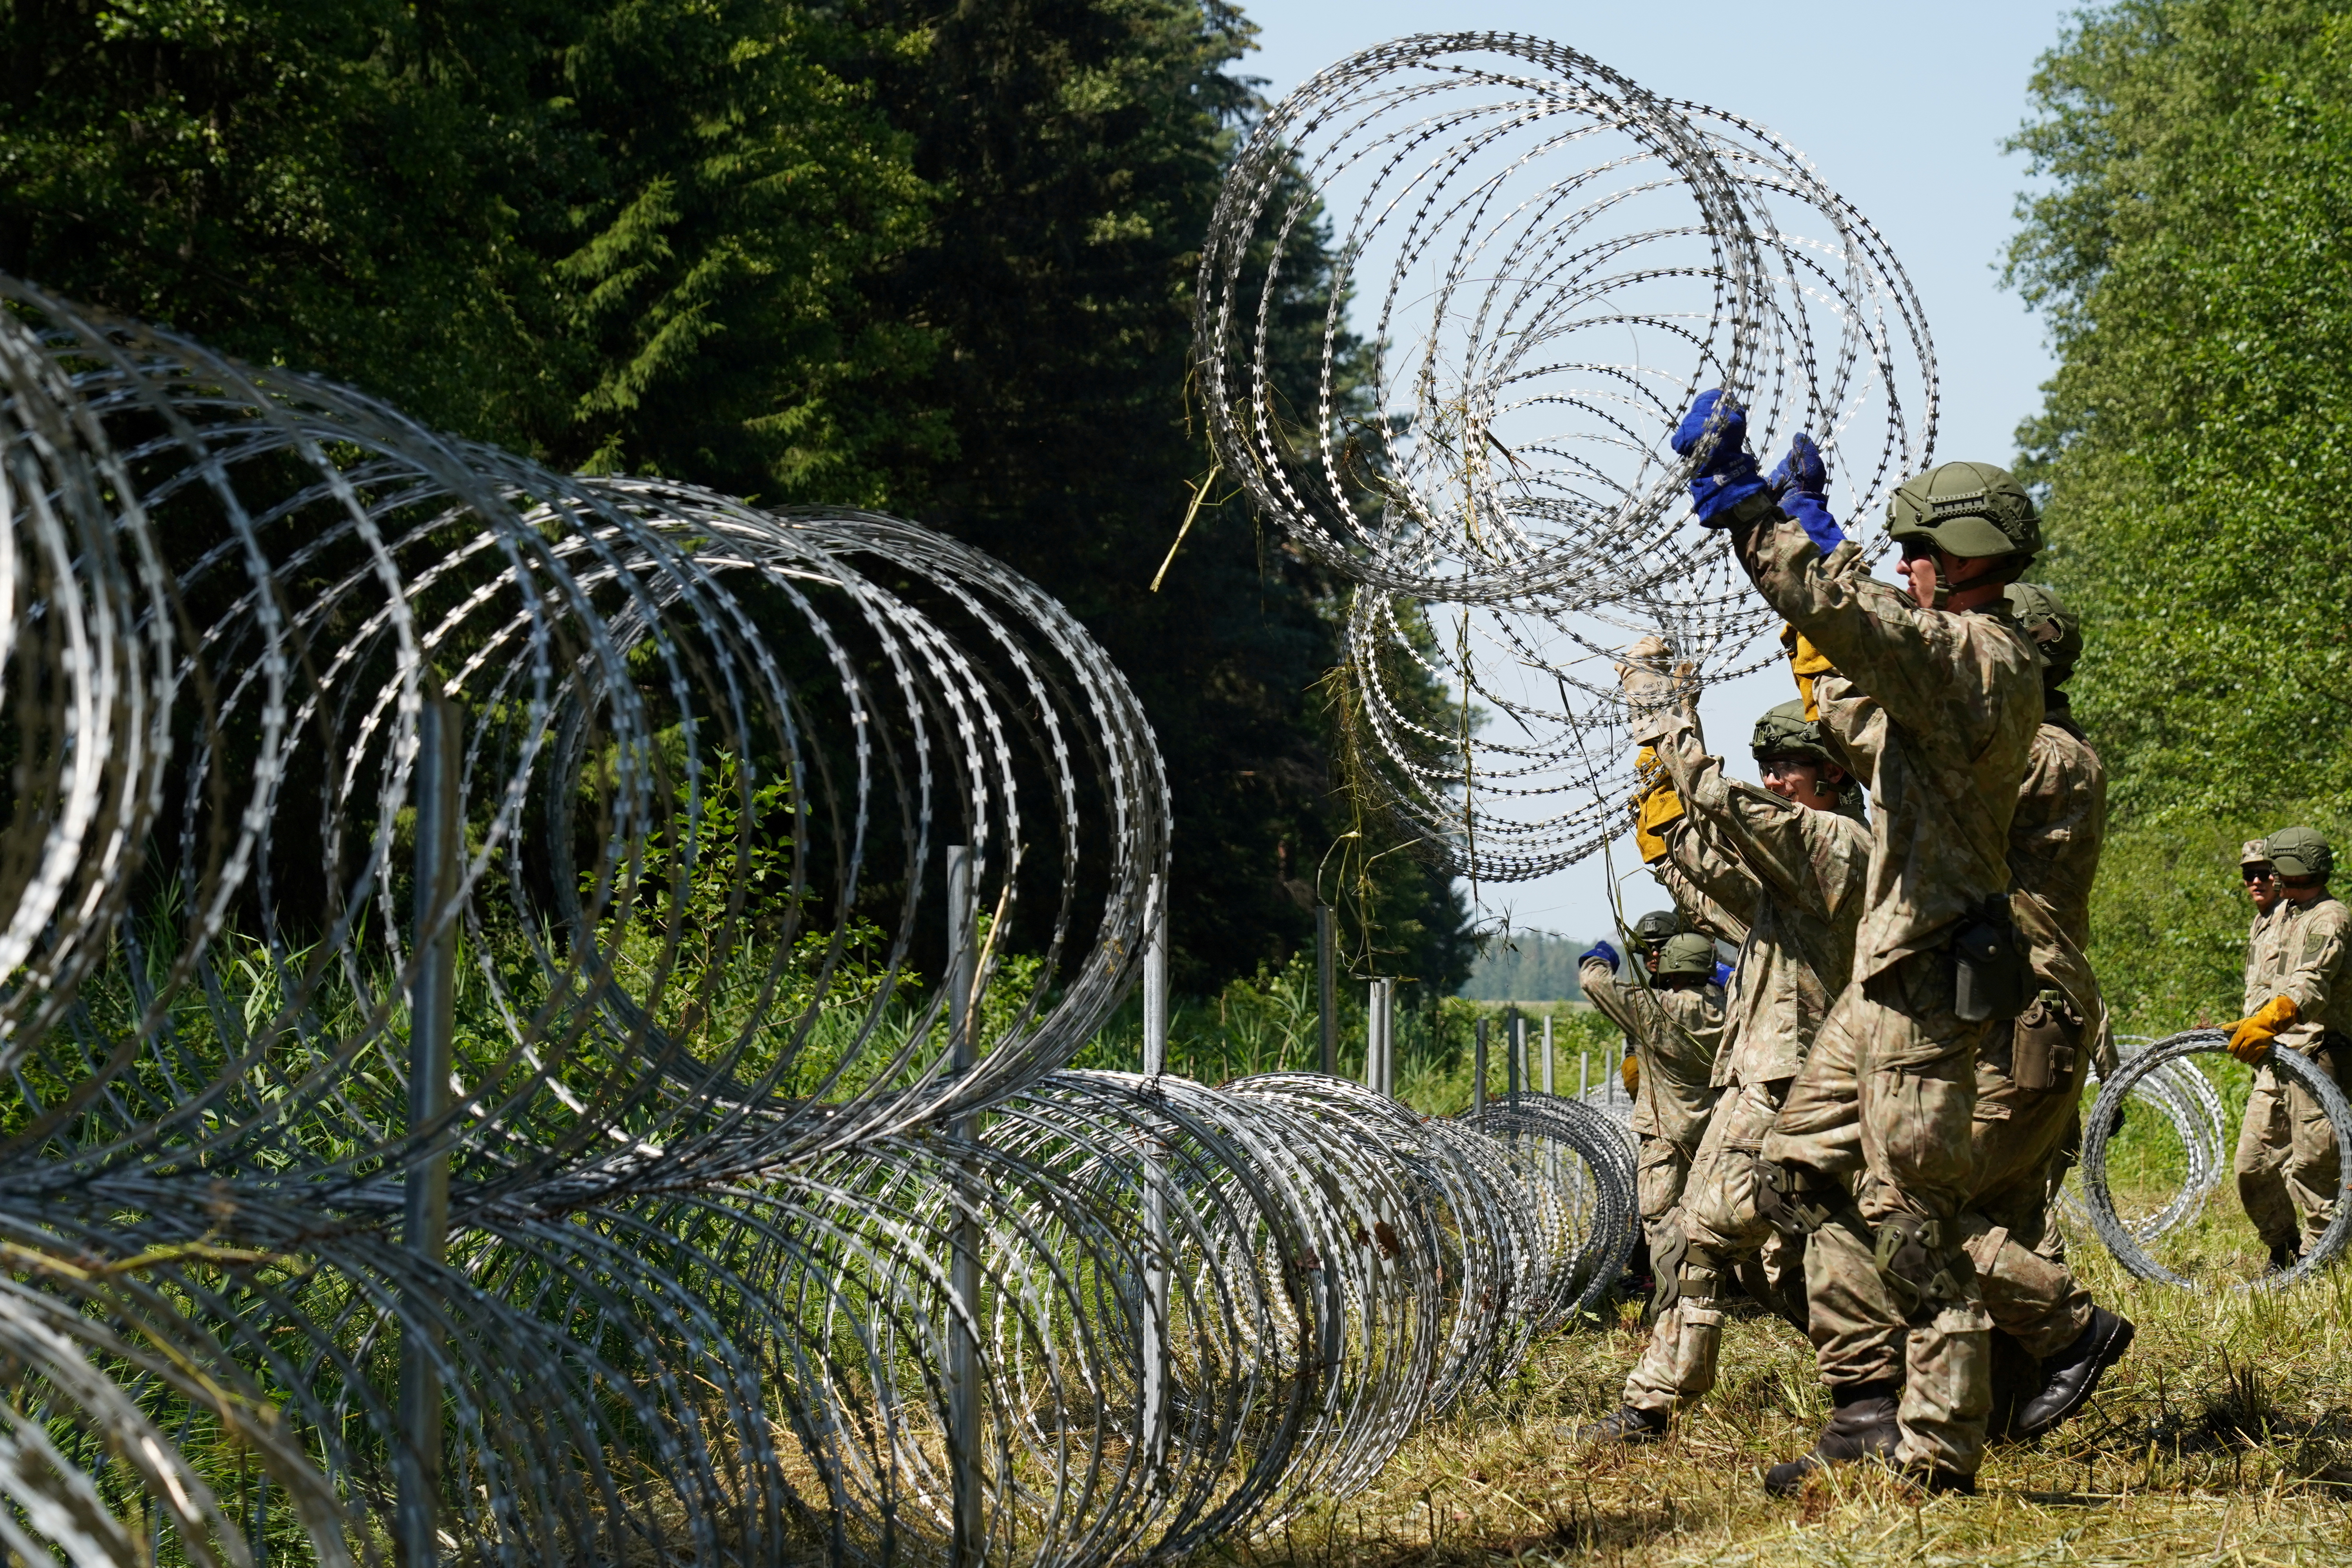 Lithuanian army soldiers install razor wire on border with Belarus in Druskininkai, Lithuania July 9, 2021. REUTERS/Janis Laizans/File Photo